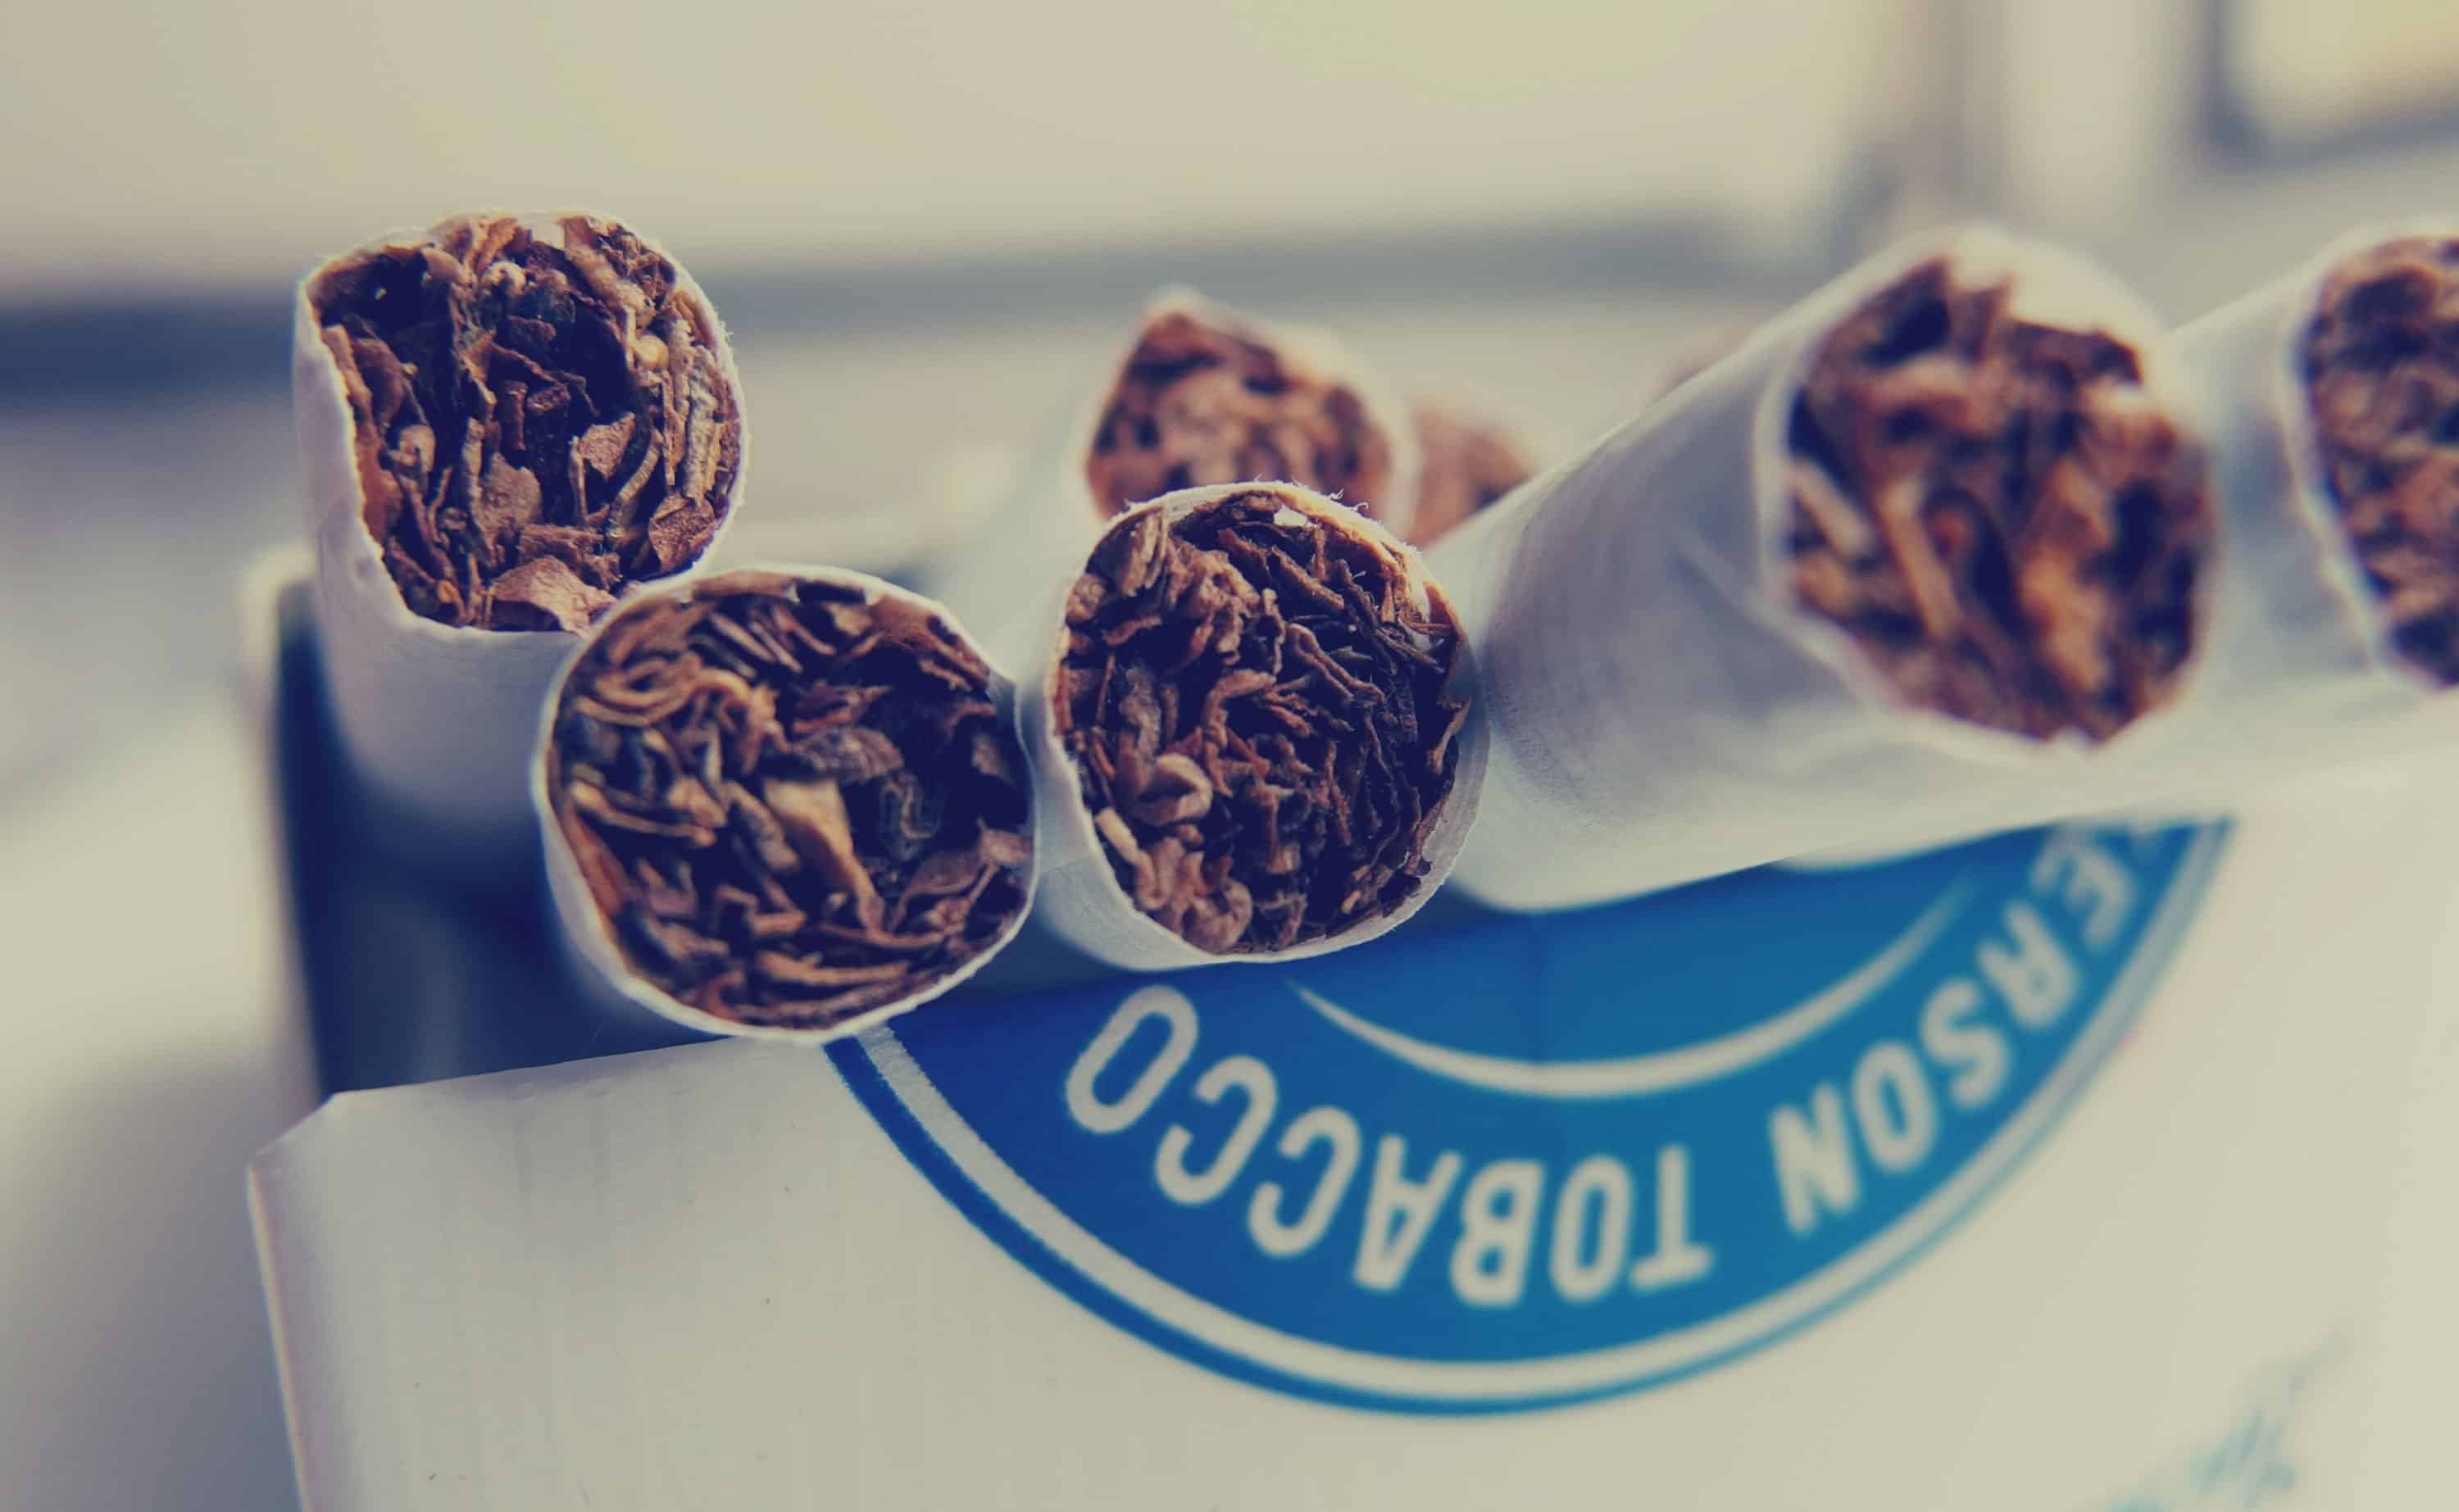 Tobacco and Public Health in TTIP